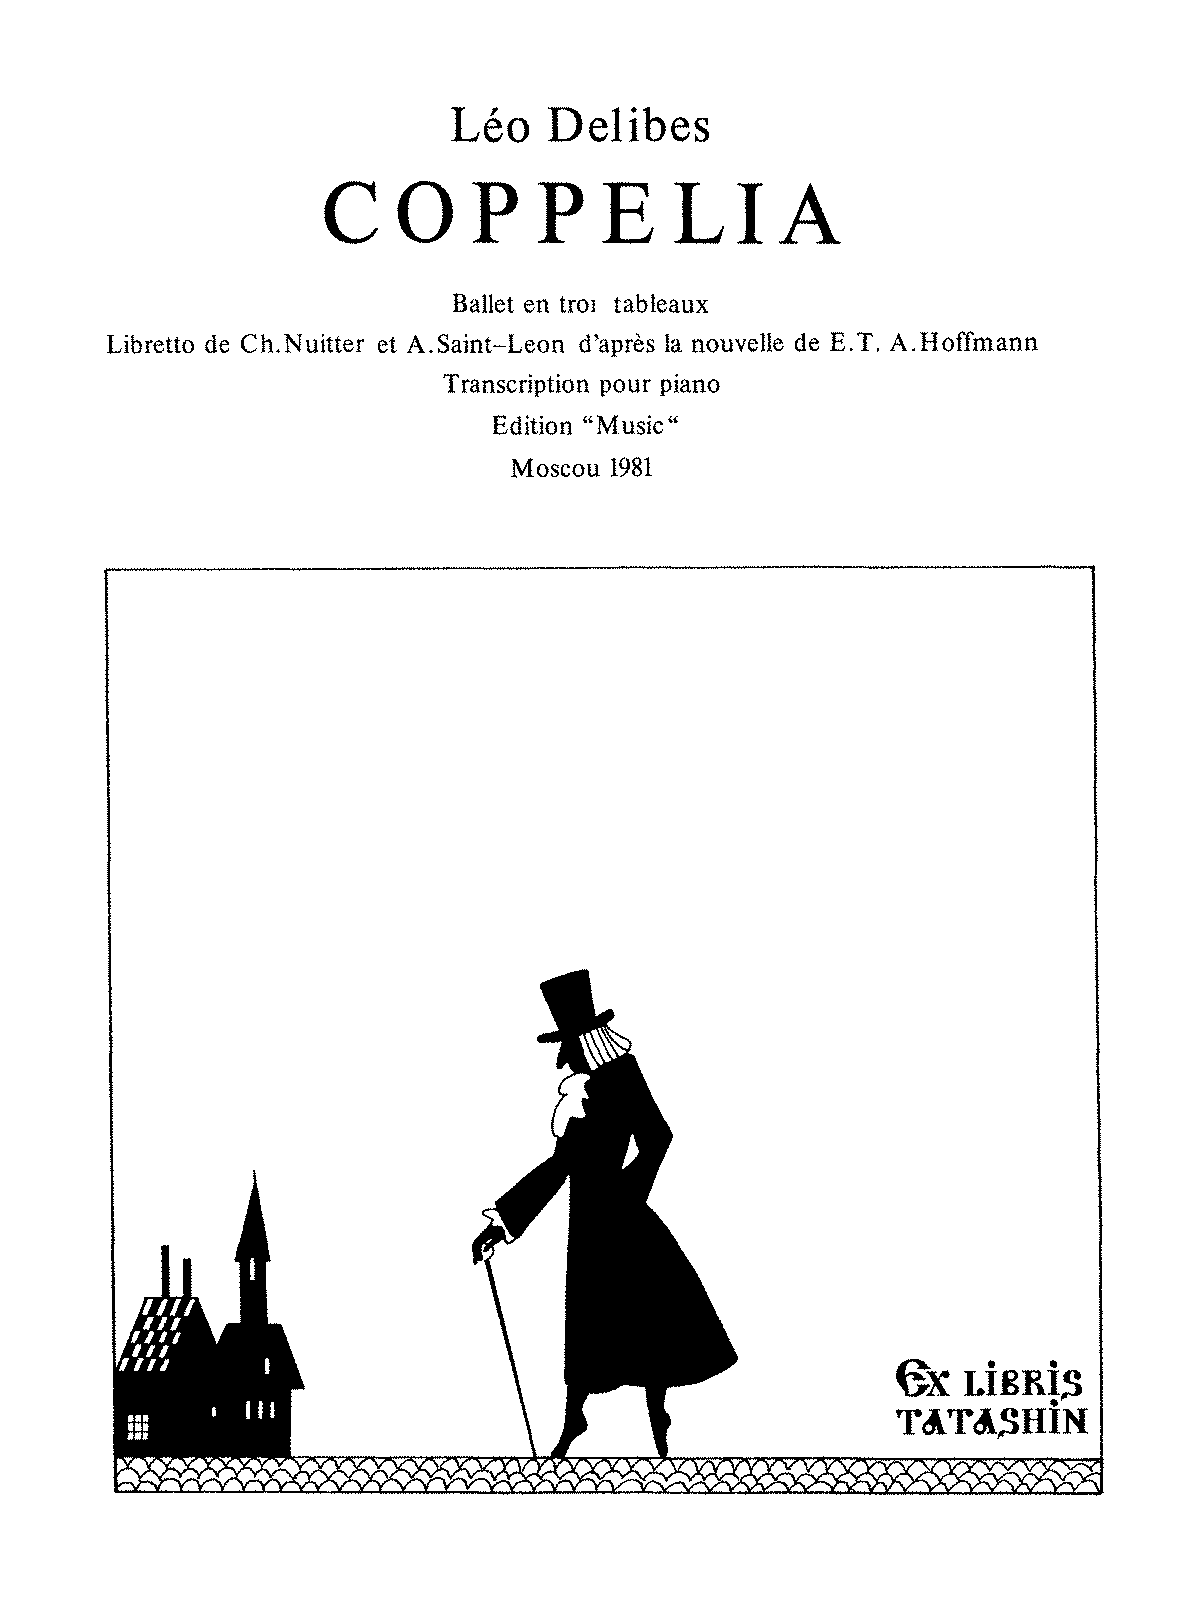 Delibes-CoppeliaPfRed.pdf